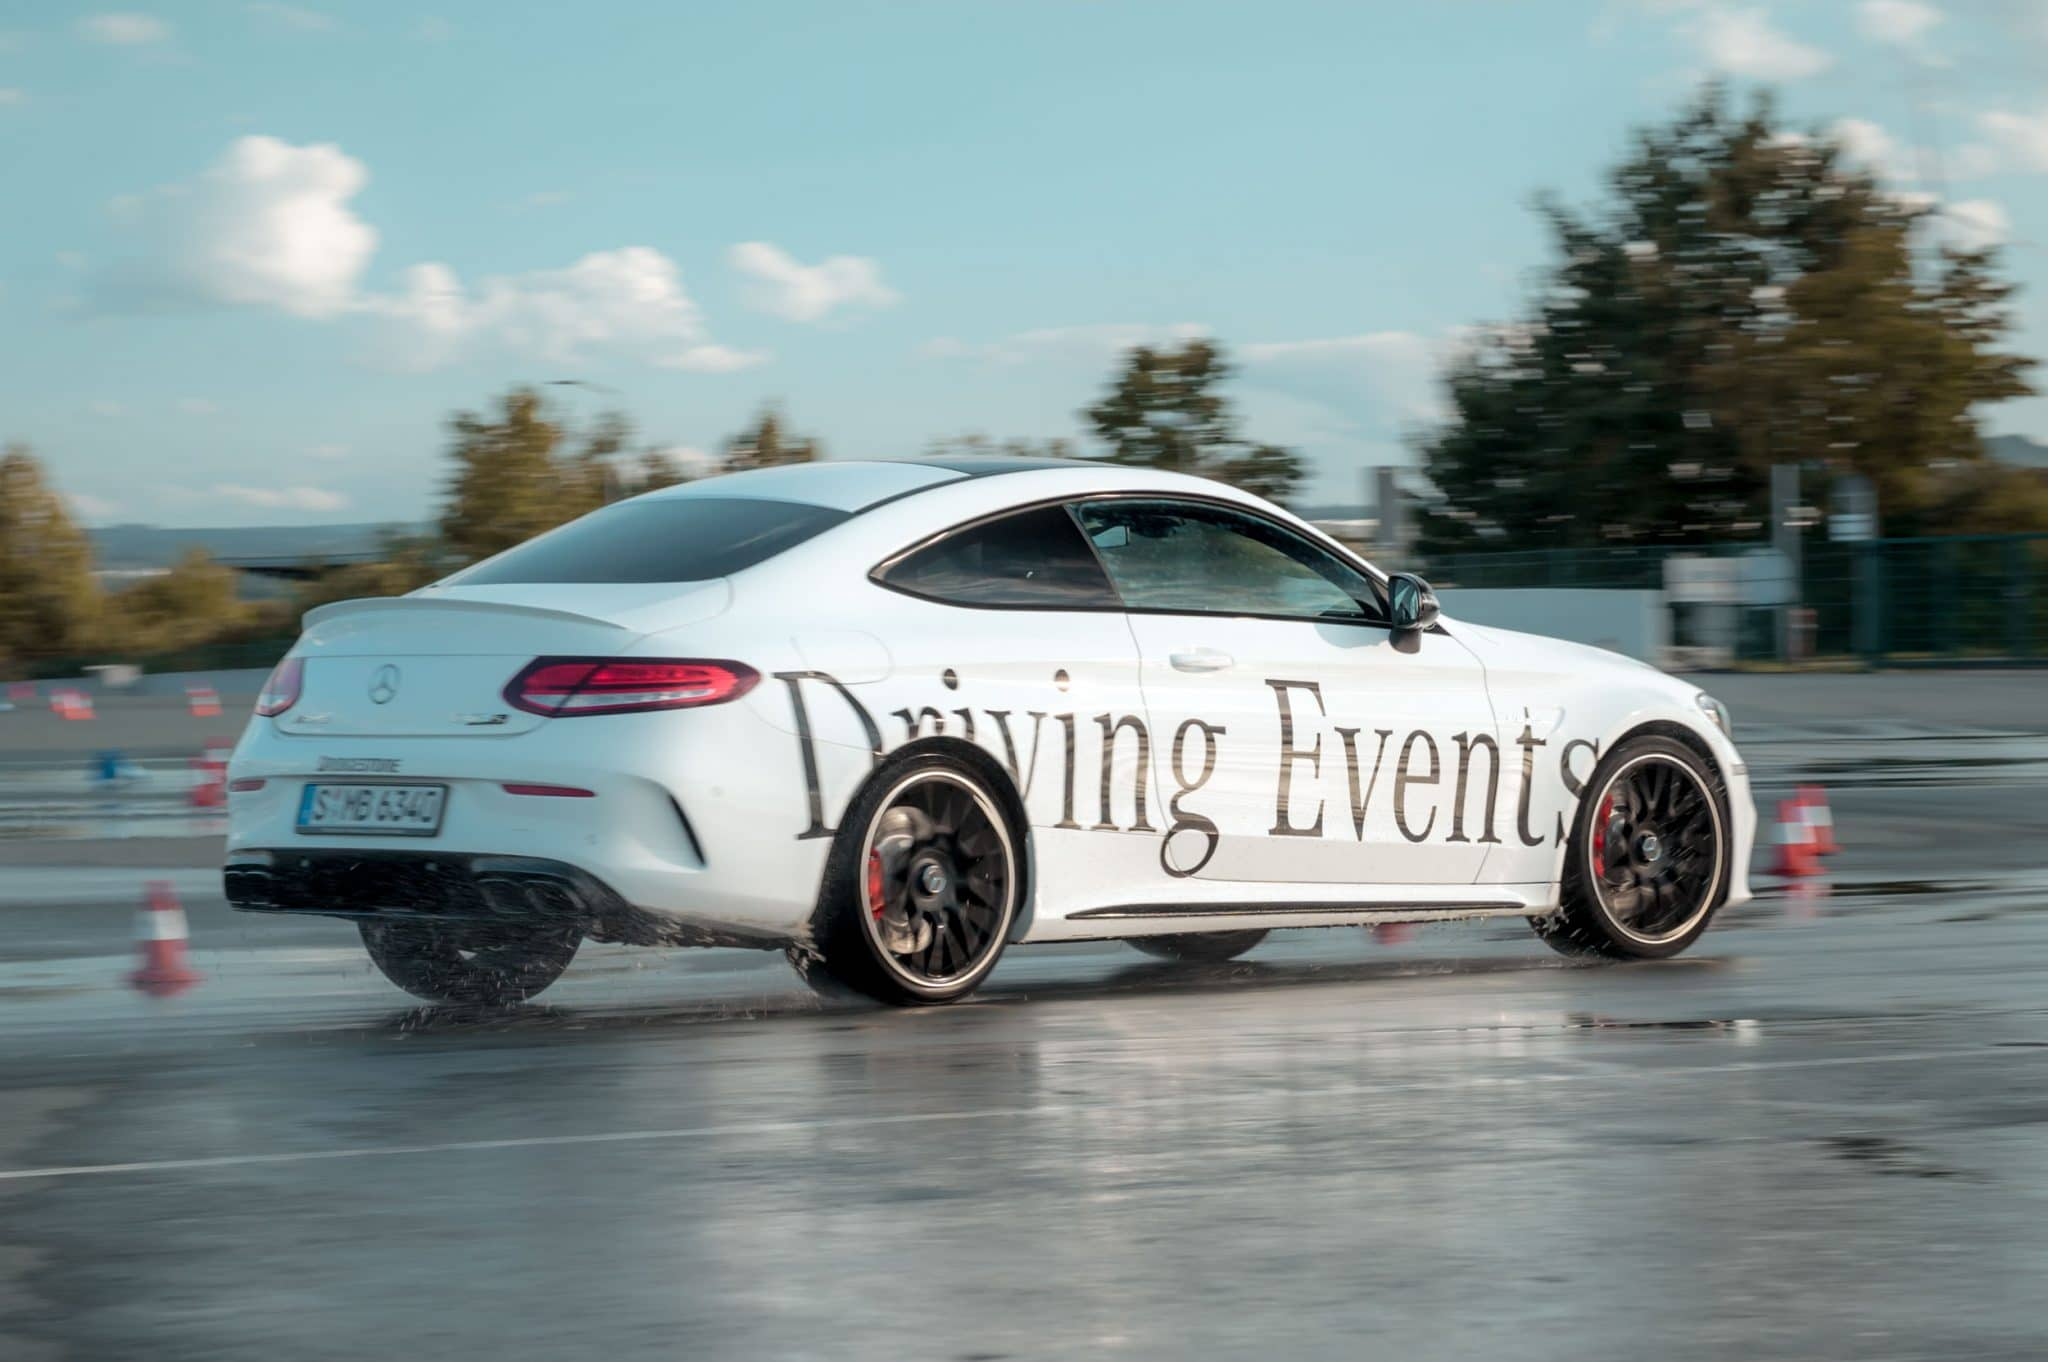 Mercedes Benz Driving Events Sachsenring 11. September 2020 626 scaled |